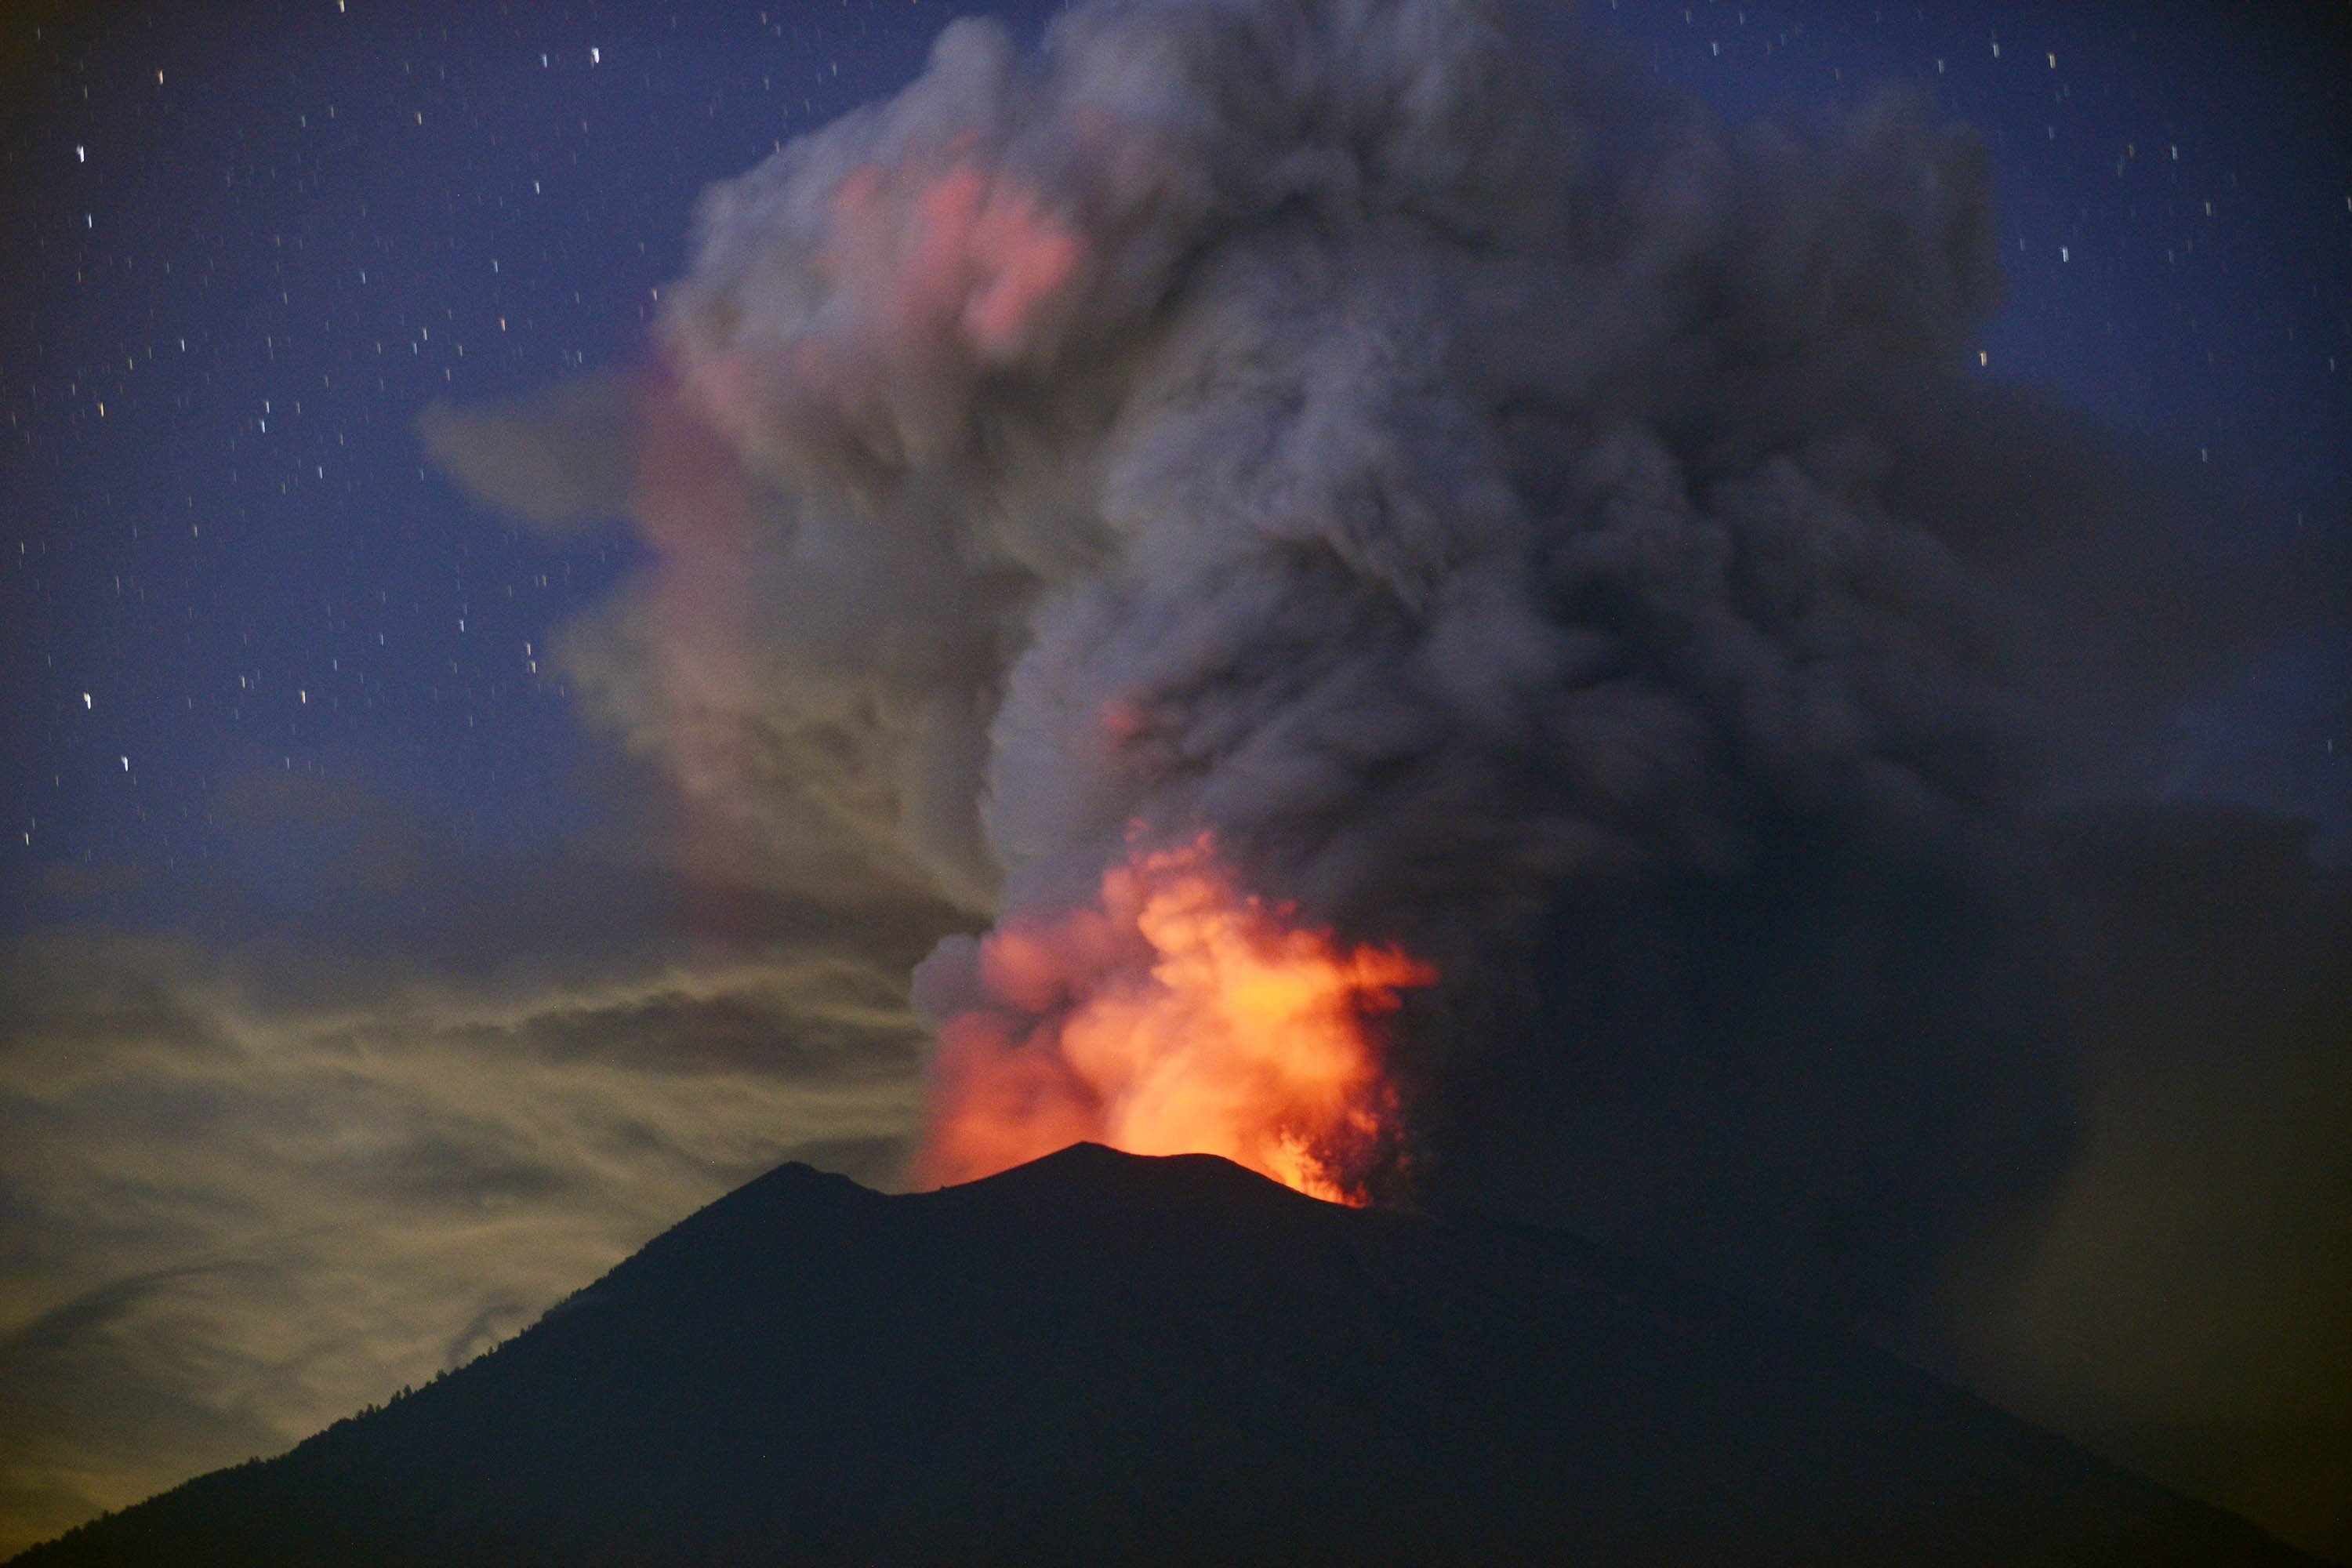 **This image is for use with this specific article only**  Bali's main airport re-opened on Wednesday after being shuttered for nearly three days due to a volcanic eruption which blanketed parts of the island in ash, forcing thousands of evacuations.